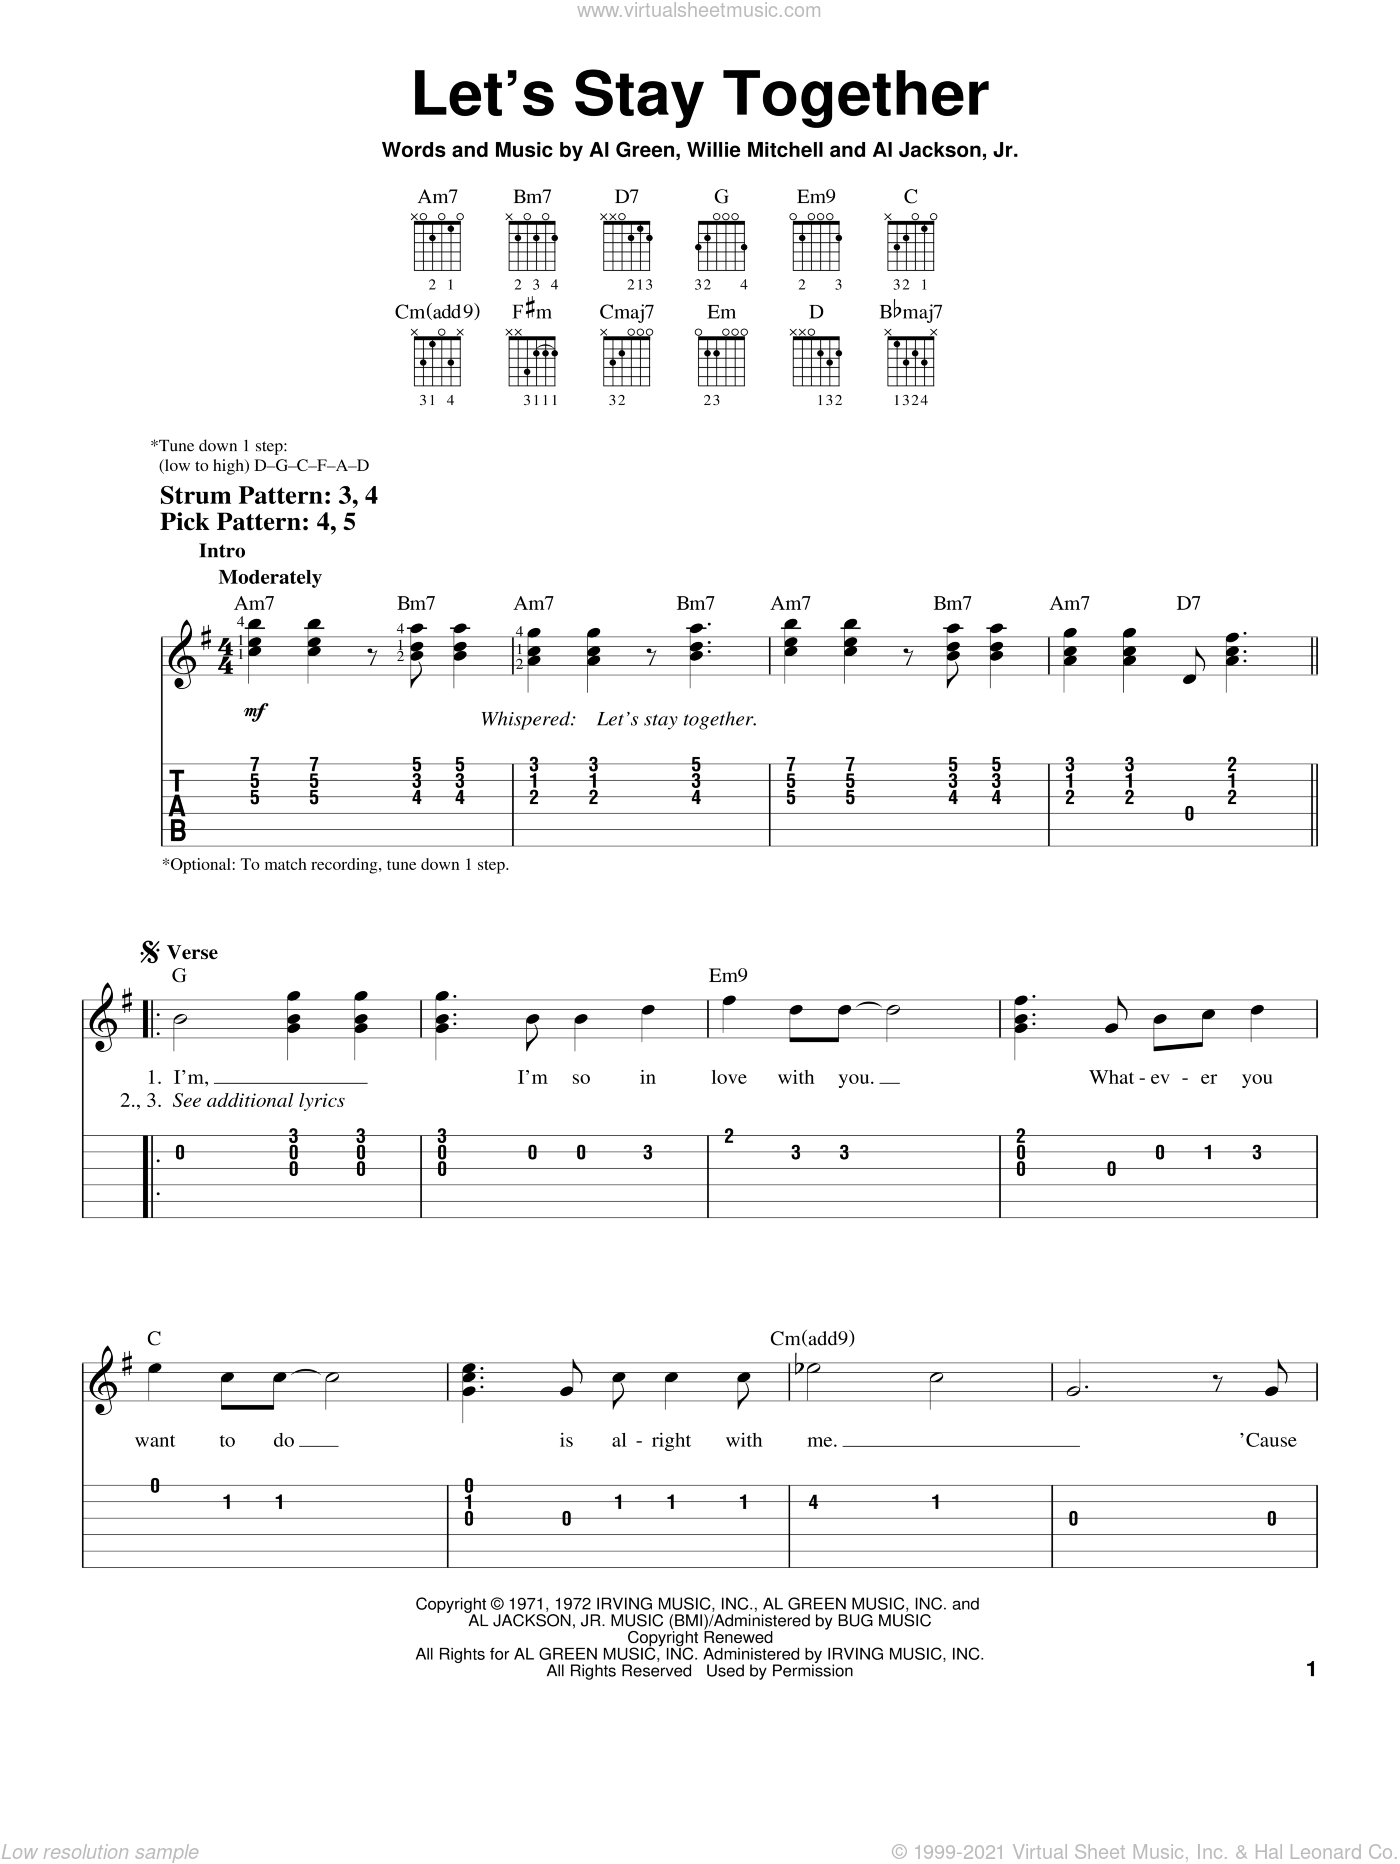 Let's Stay Together sheet music for guitar solo (chords) by Al Green, Al Jackson, Jr. and Willie Mitchell, wedding score, easy guitar (chords). Score Image Preview.